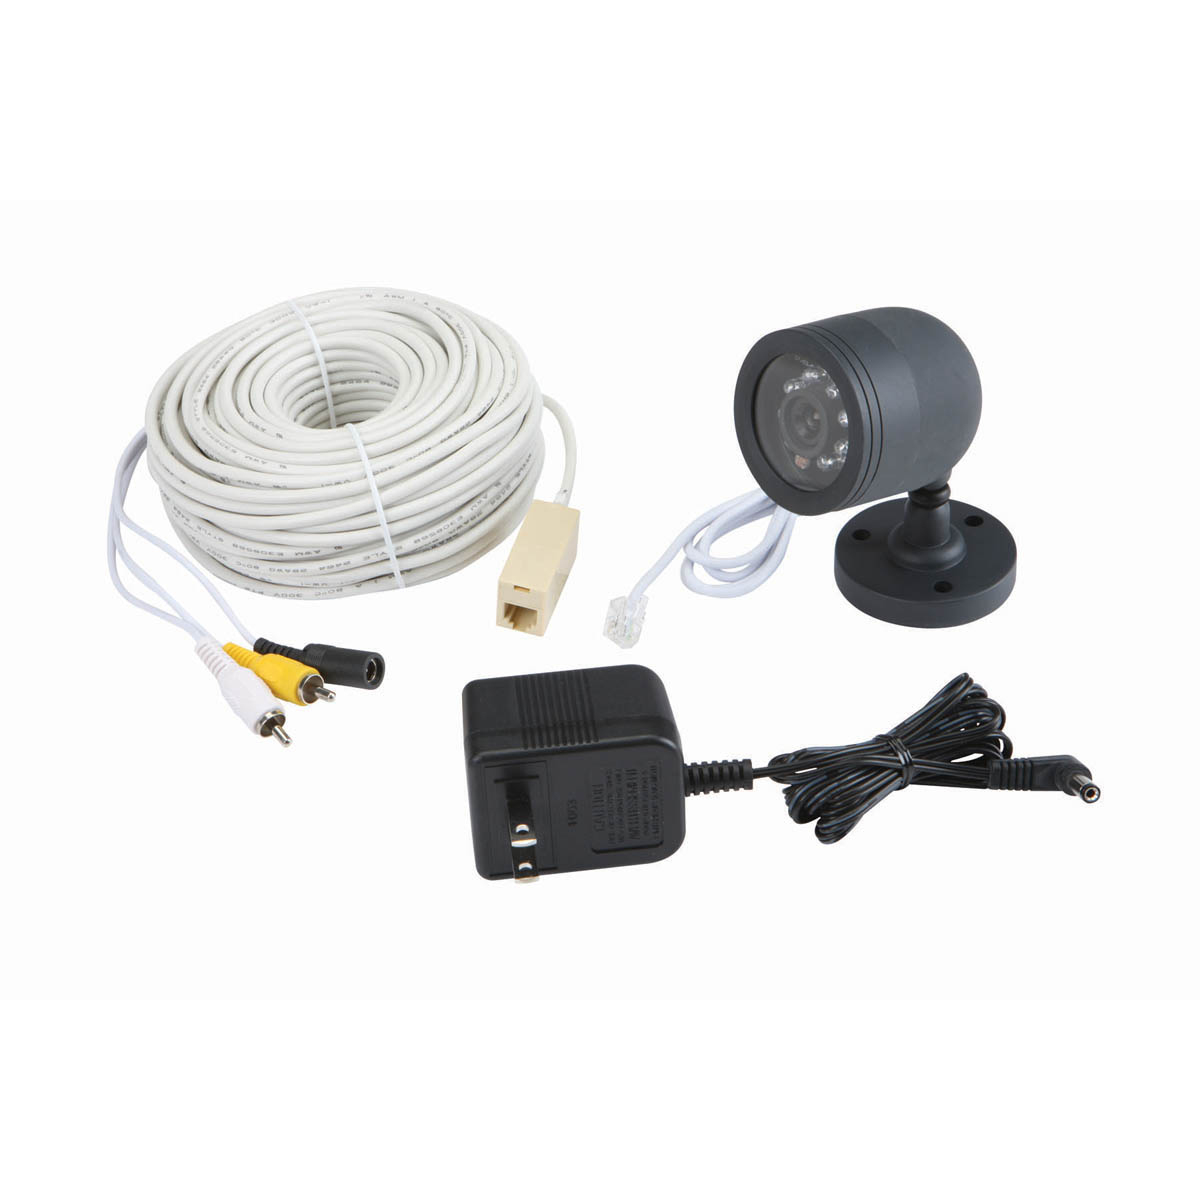 Weatherproof Color Security Camera With Night Vision - Usb Wiring Diagram For Security Camera Rl01Ctv